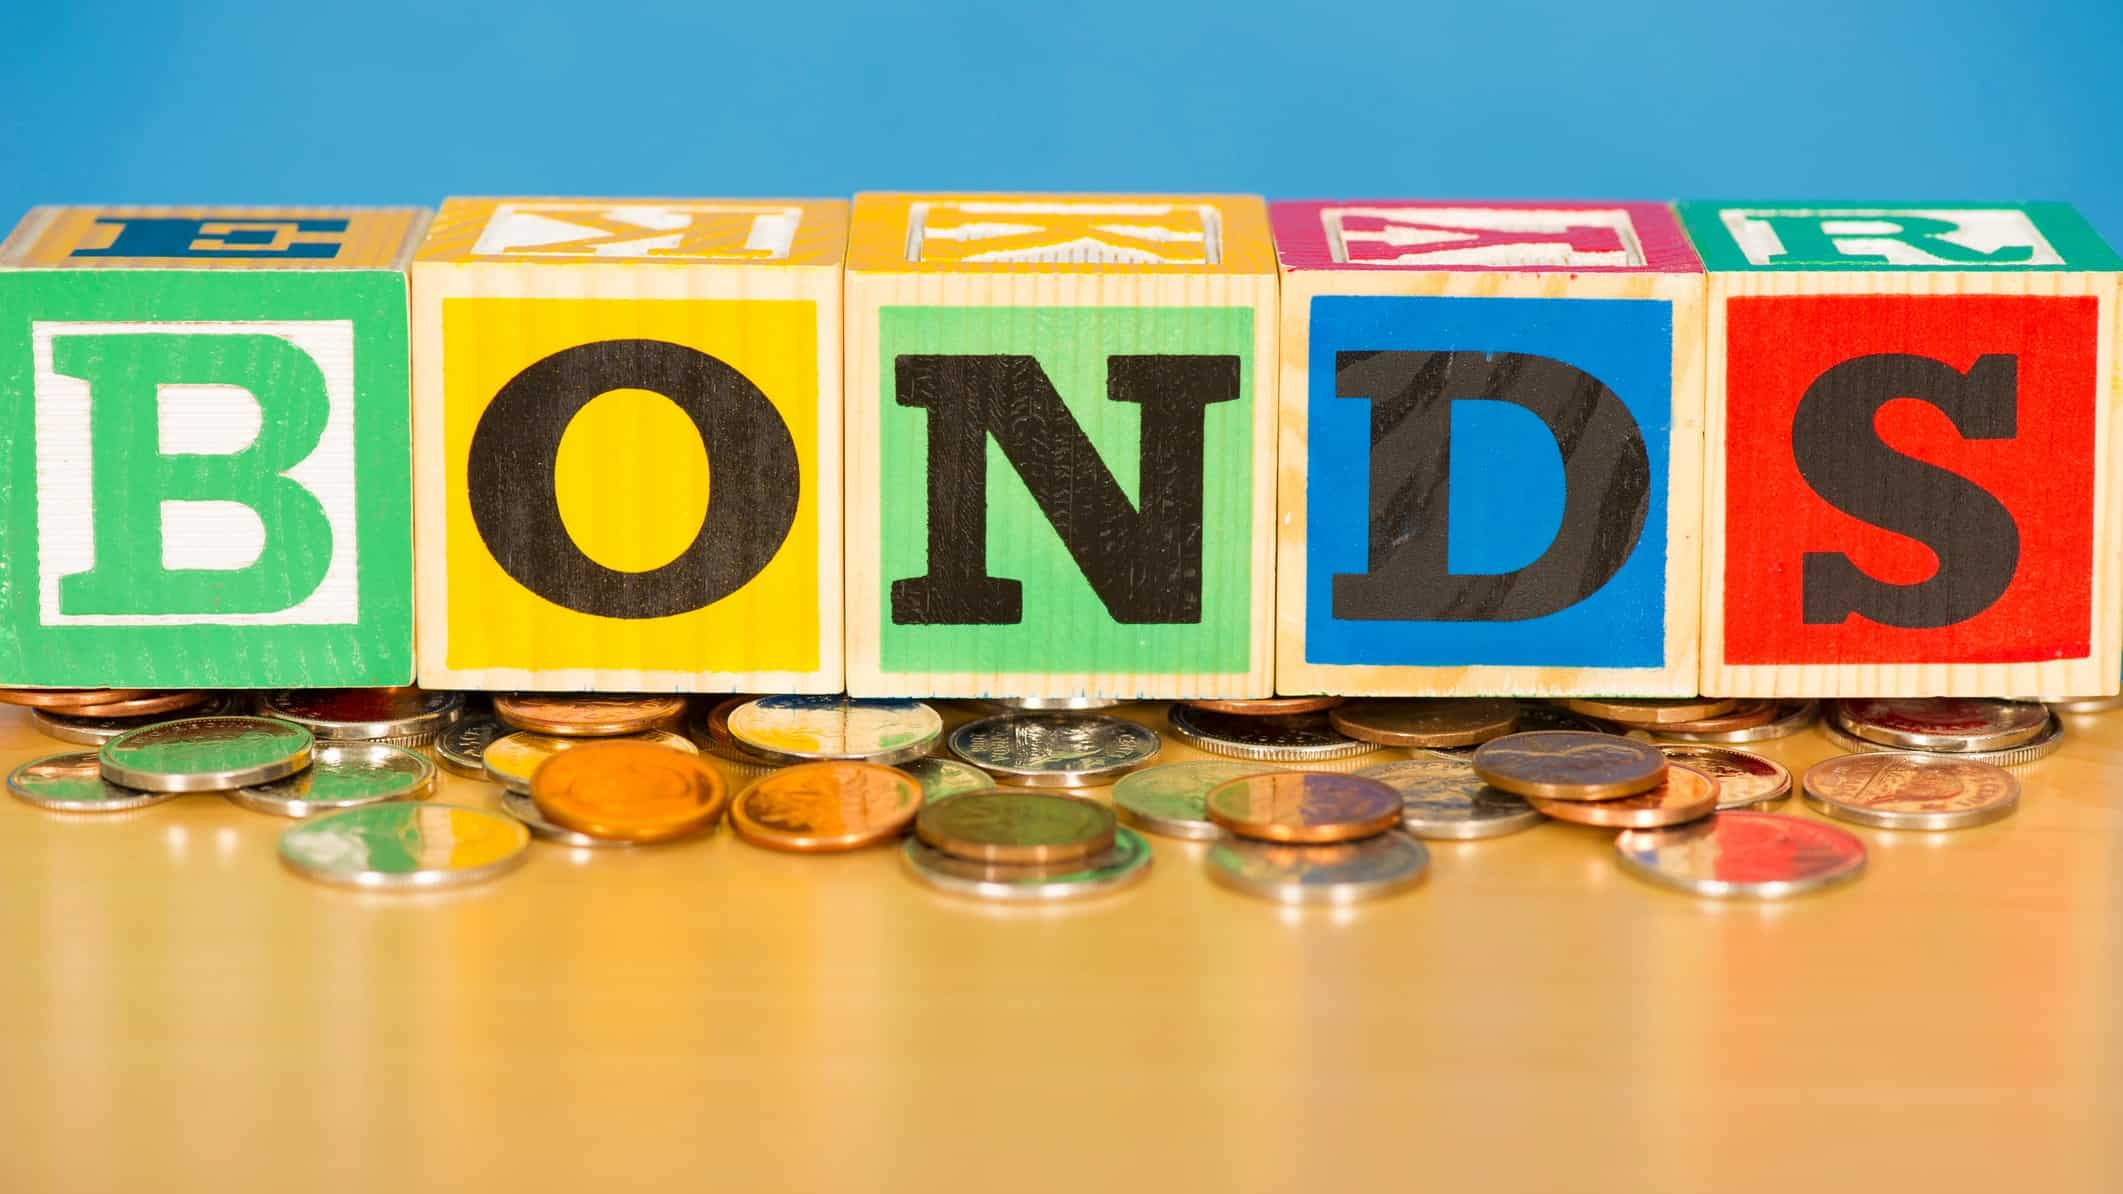 bond yields represented by wooden blocks spelling bonds atop coins